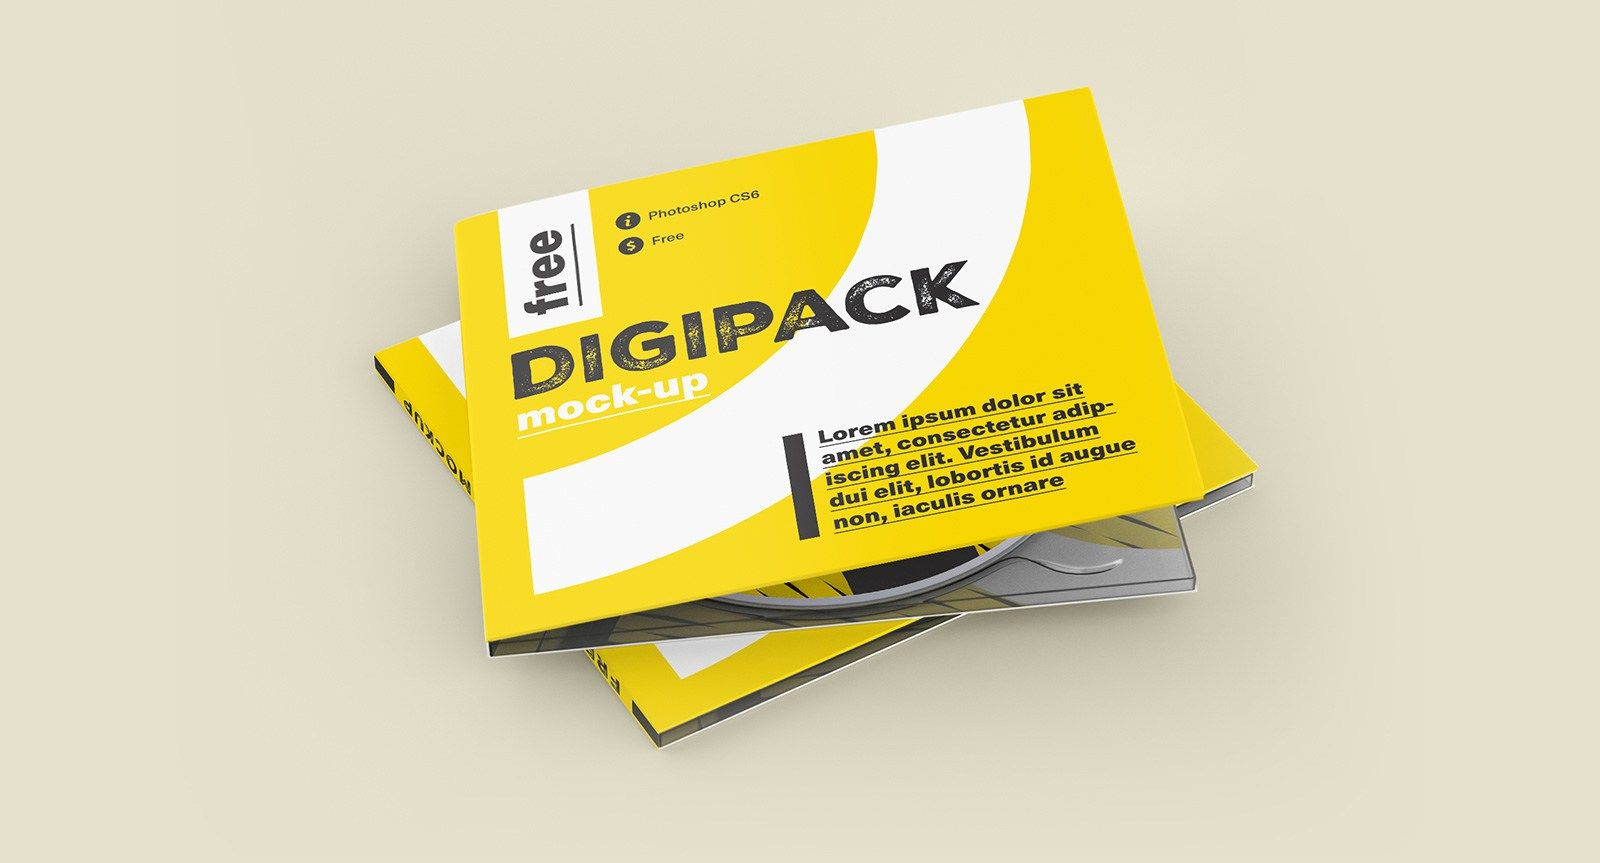 Free Digipack Mockup Psd Pinterest Cd Cover And C4d Circuit Board Generator Pack From Remco The Pixel Lab